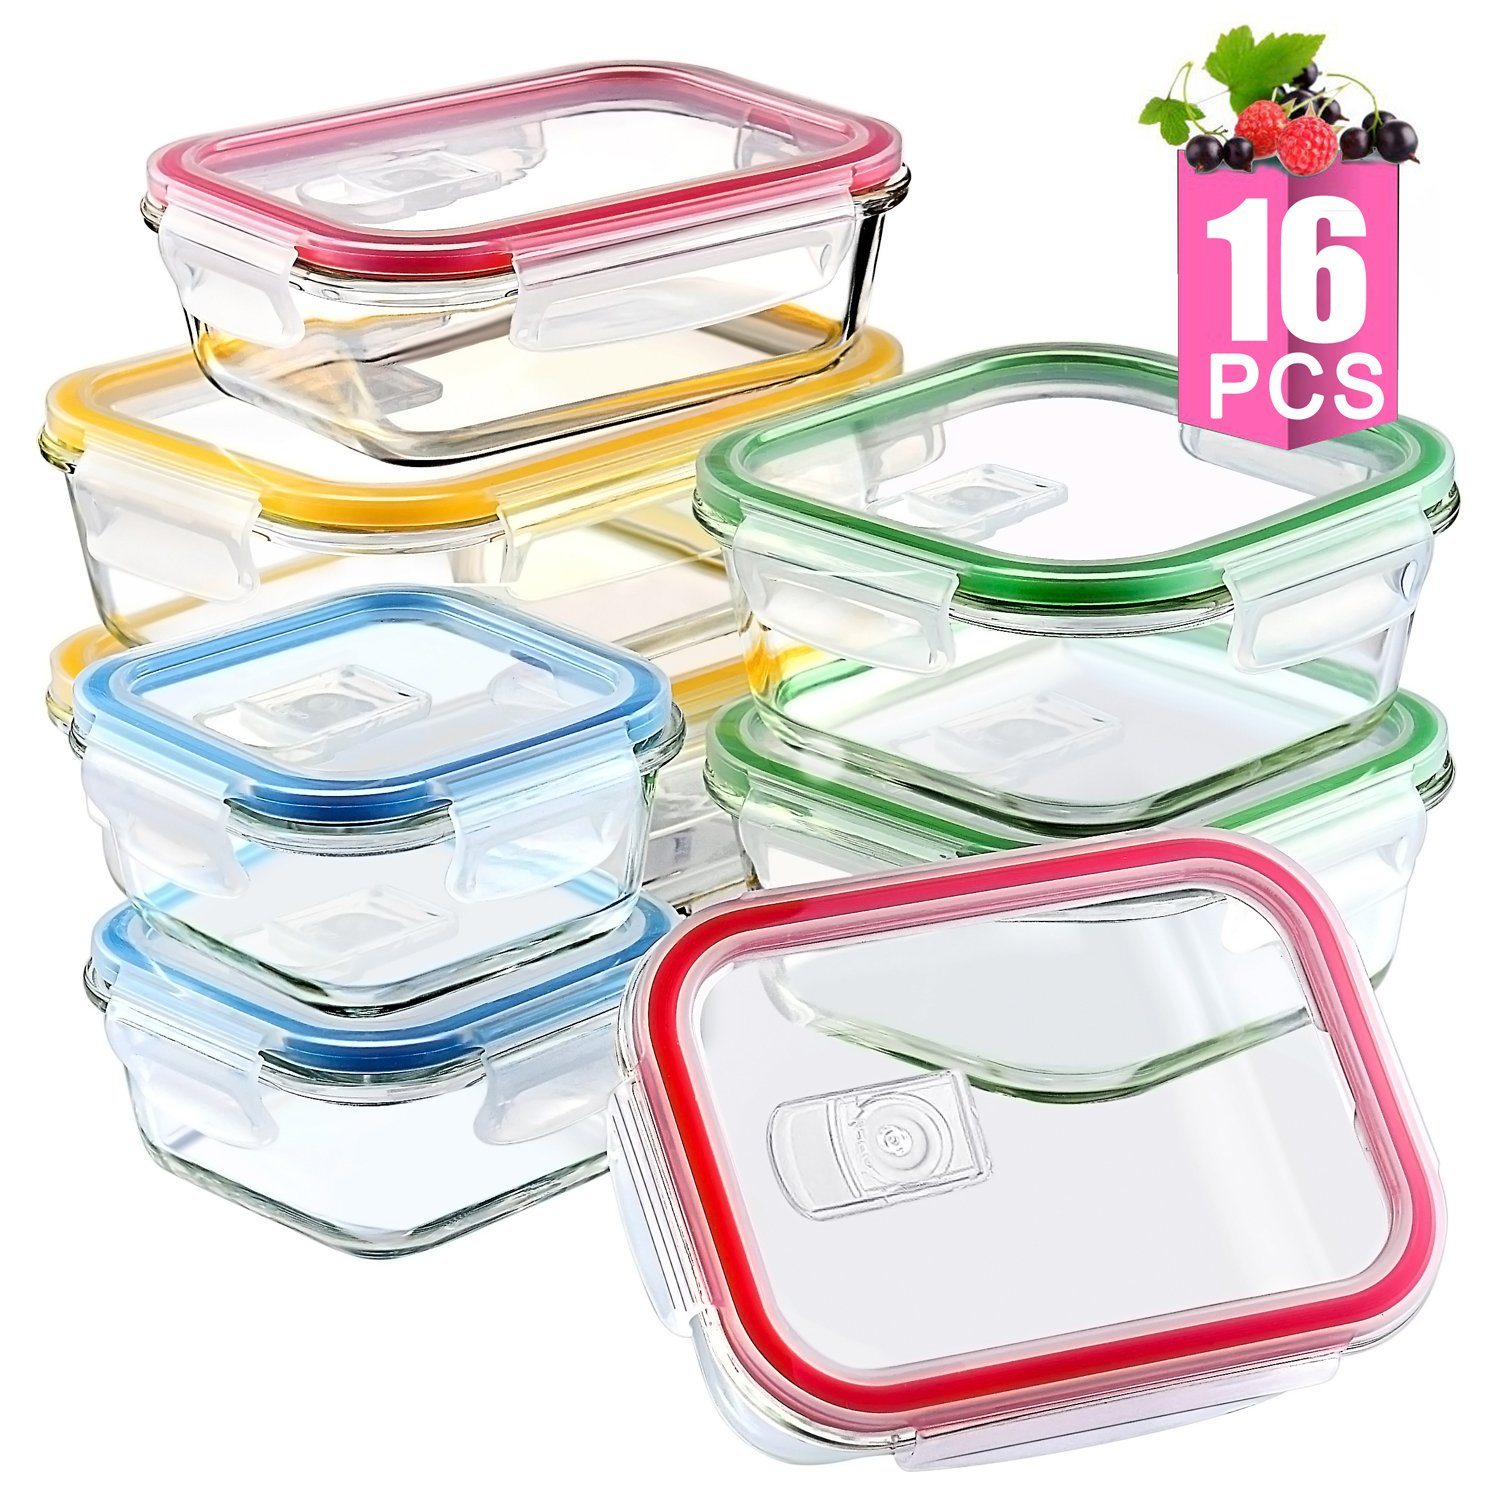 16 Pieces Glass Food Storage Containers with Airtight Lids Reusable for Home Kitchen Glass Food Containers